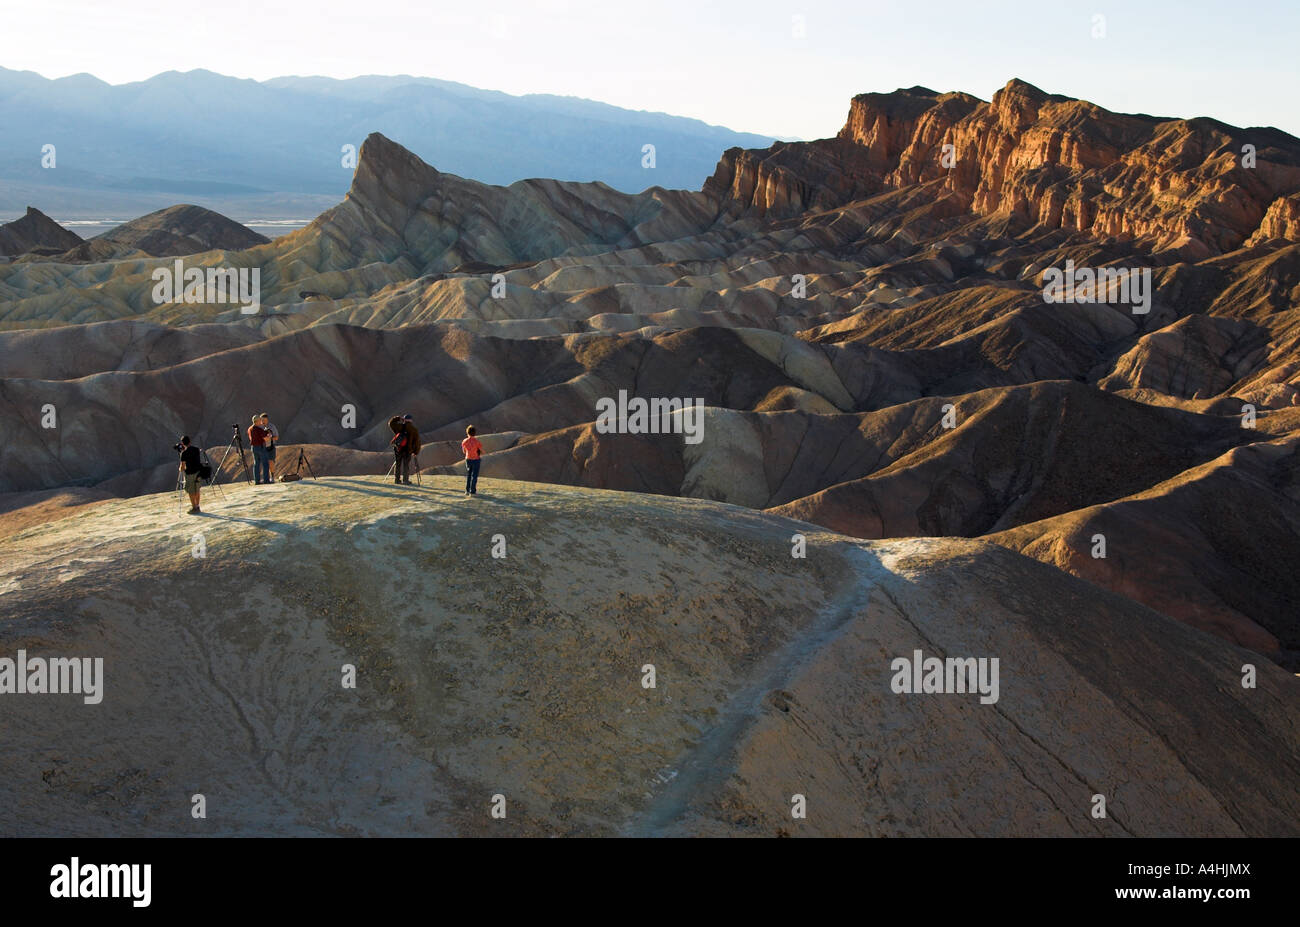 Photographers At Zabriskie Point, Death Valley National Park, USA - Stock Image